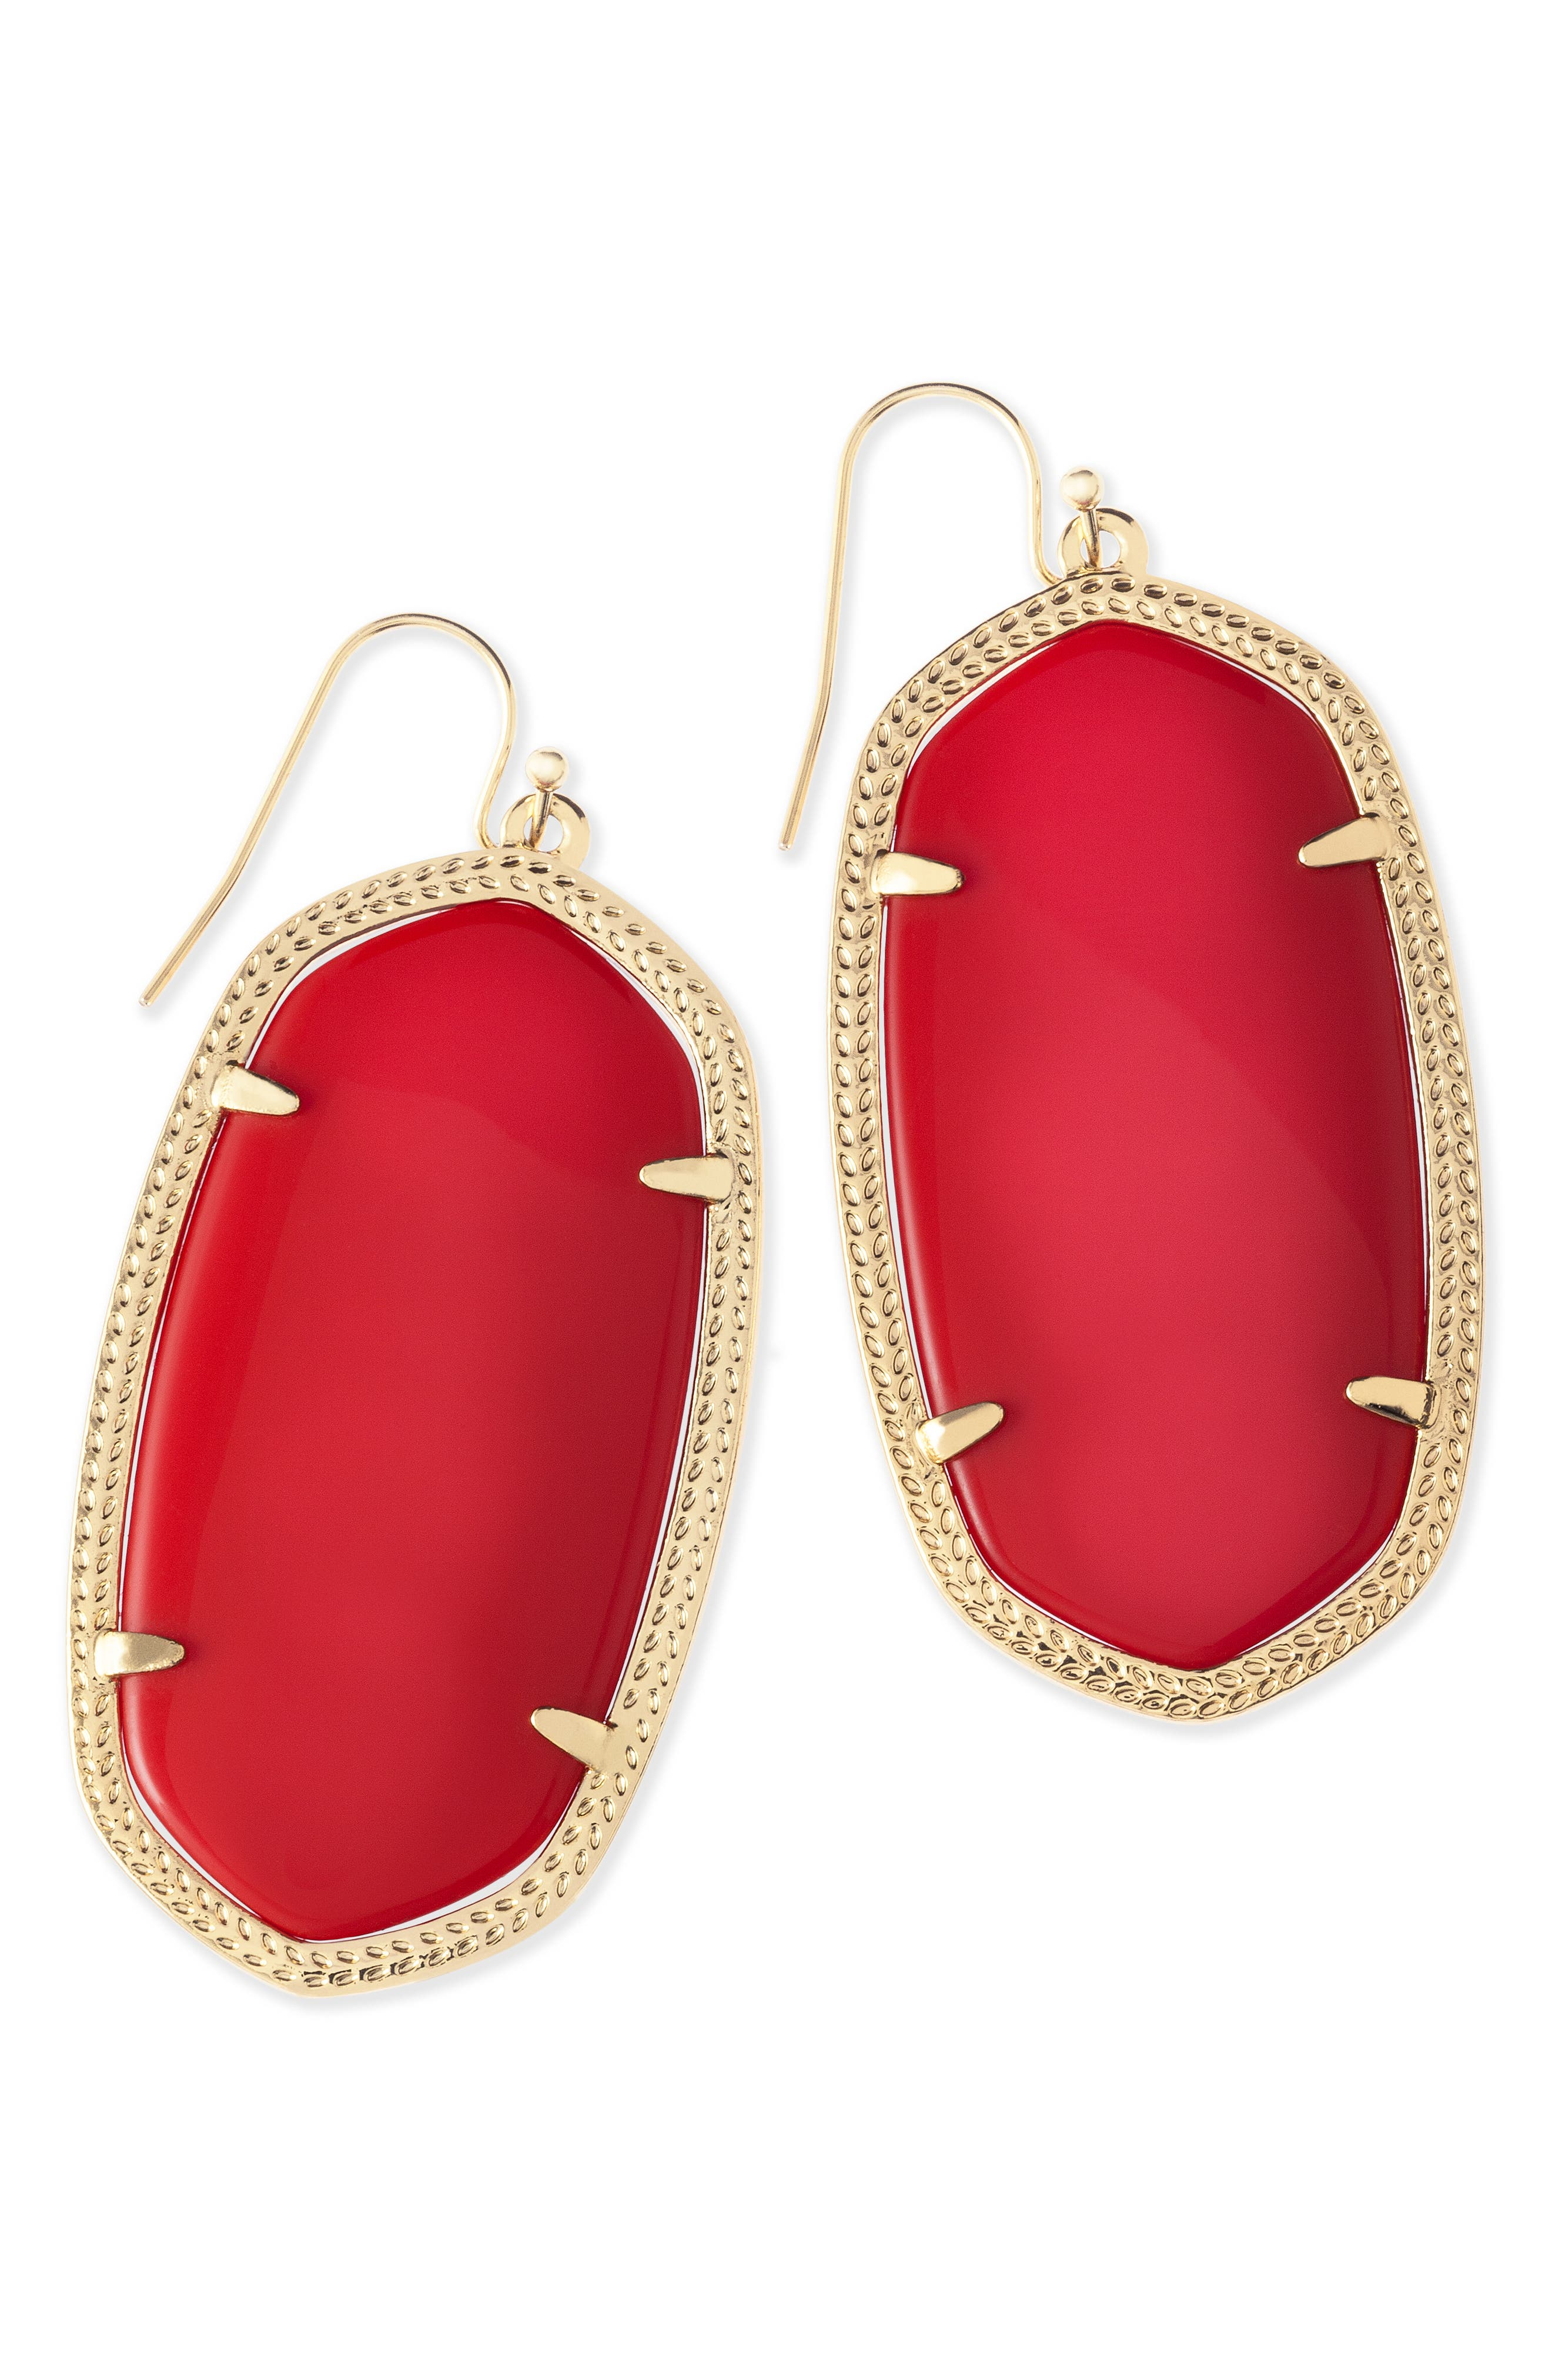 Danielle - Large Oval Statement Earrings,                             Alternate thumbnail 293, color,